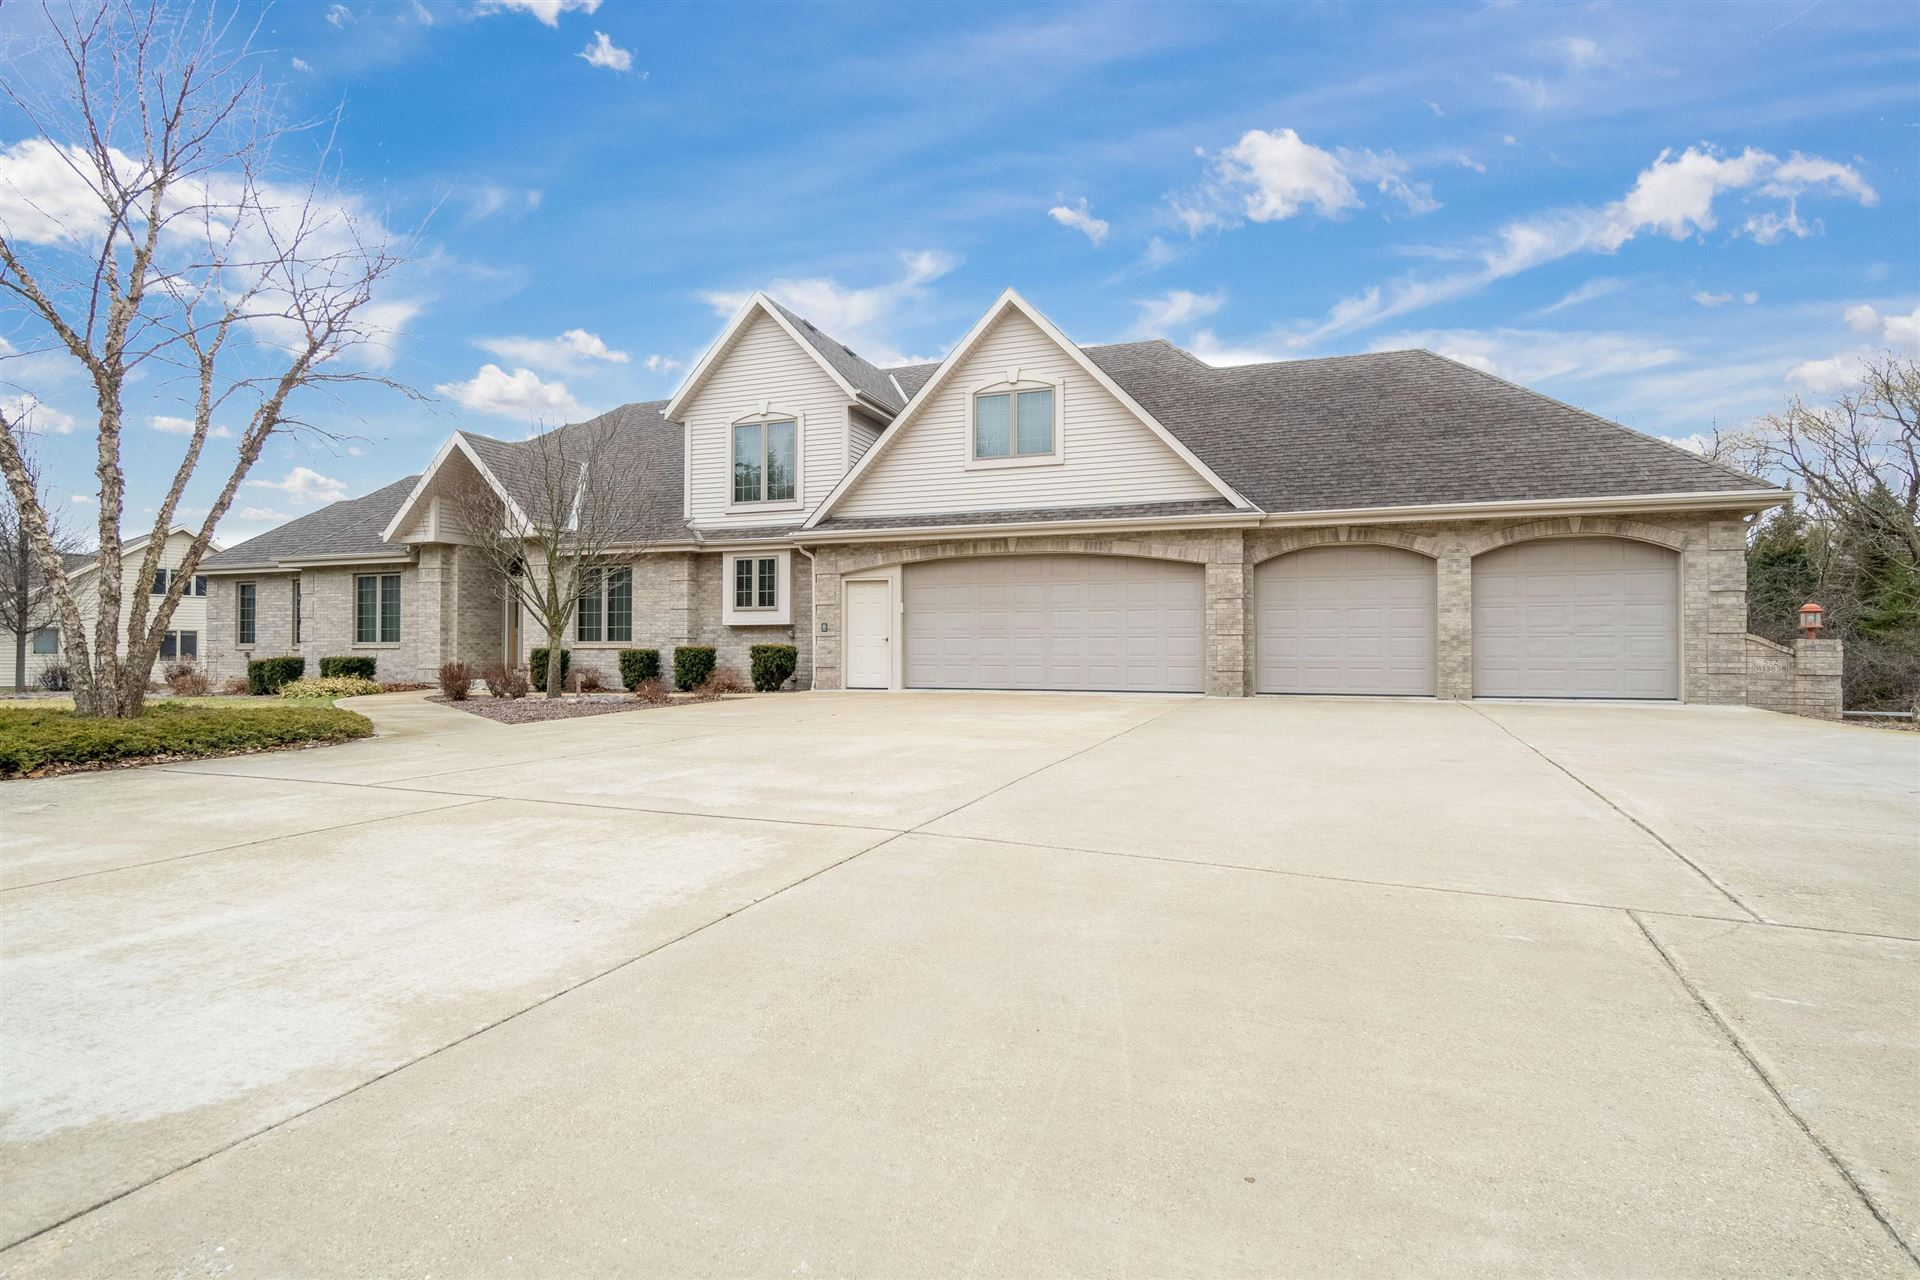 S72W13838 Woods Rd, Muskego, WI 53150 - #: 1683455